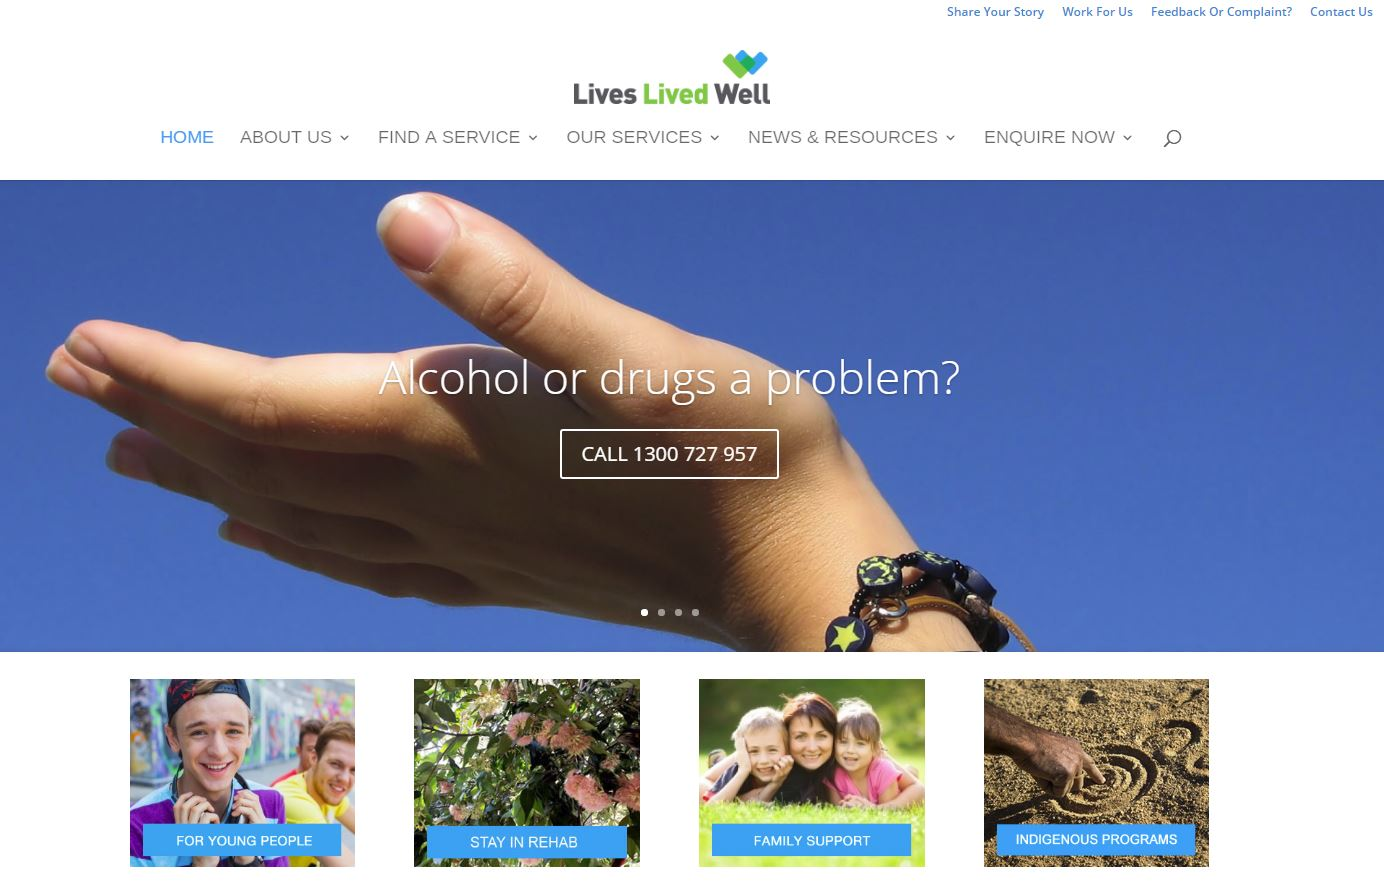 lives well lived drug counselling